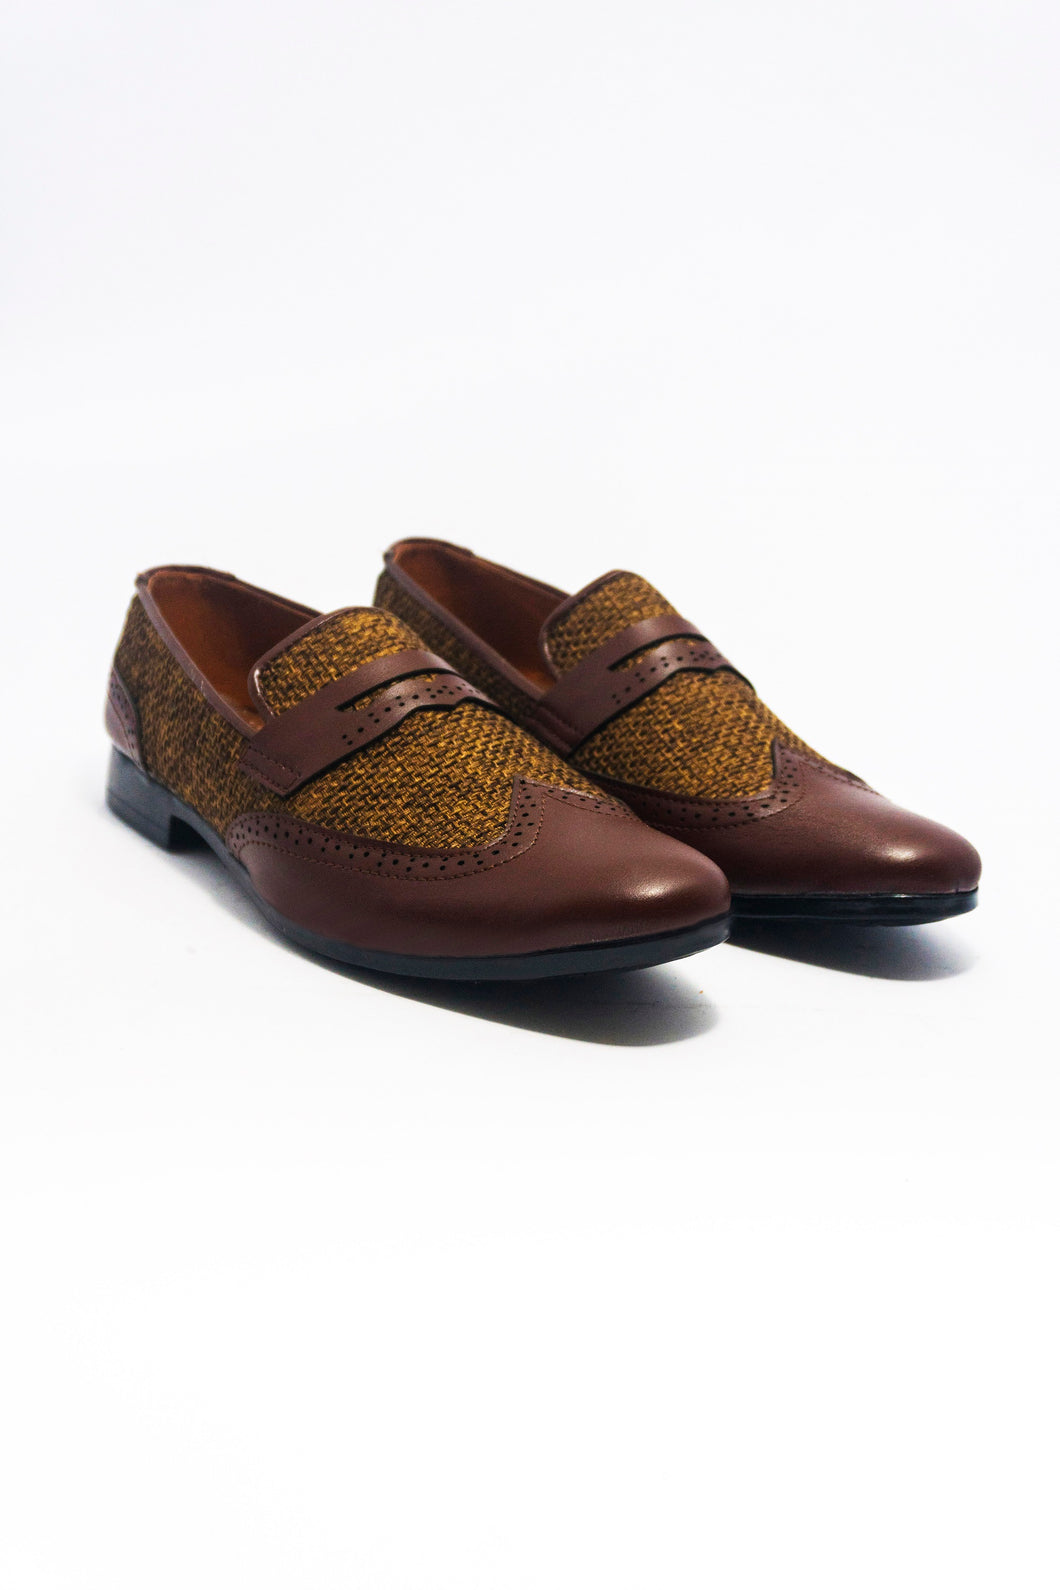 The Brown Wingtip